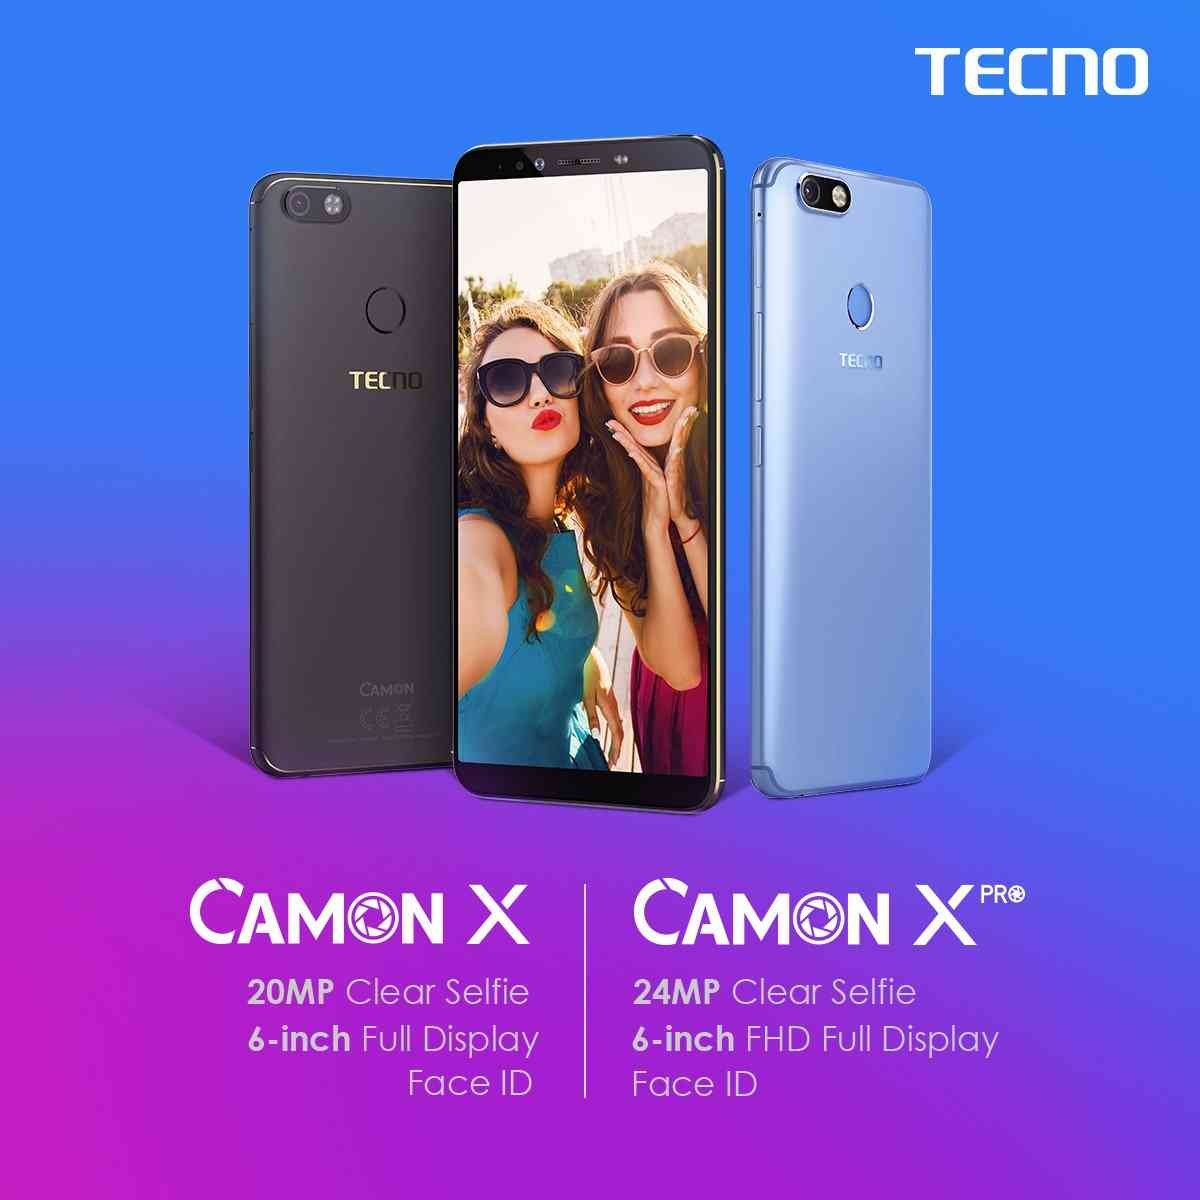 Tecno Camon X and X Pro Full Phone Specifications, Features, Review, Unboxing and Price.